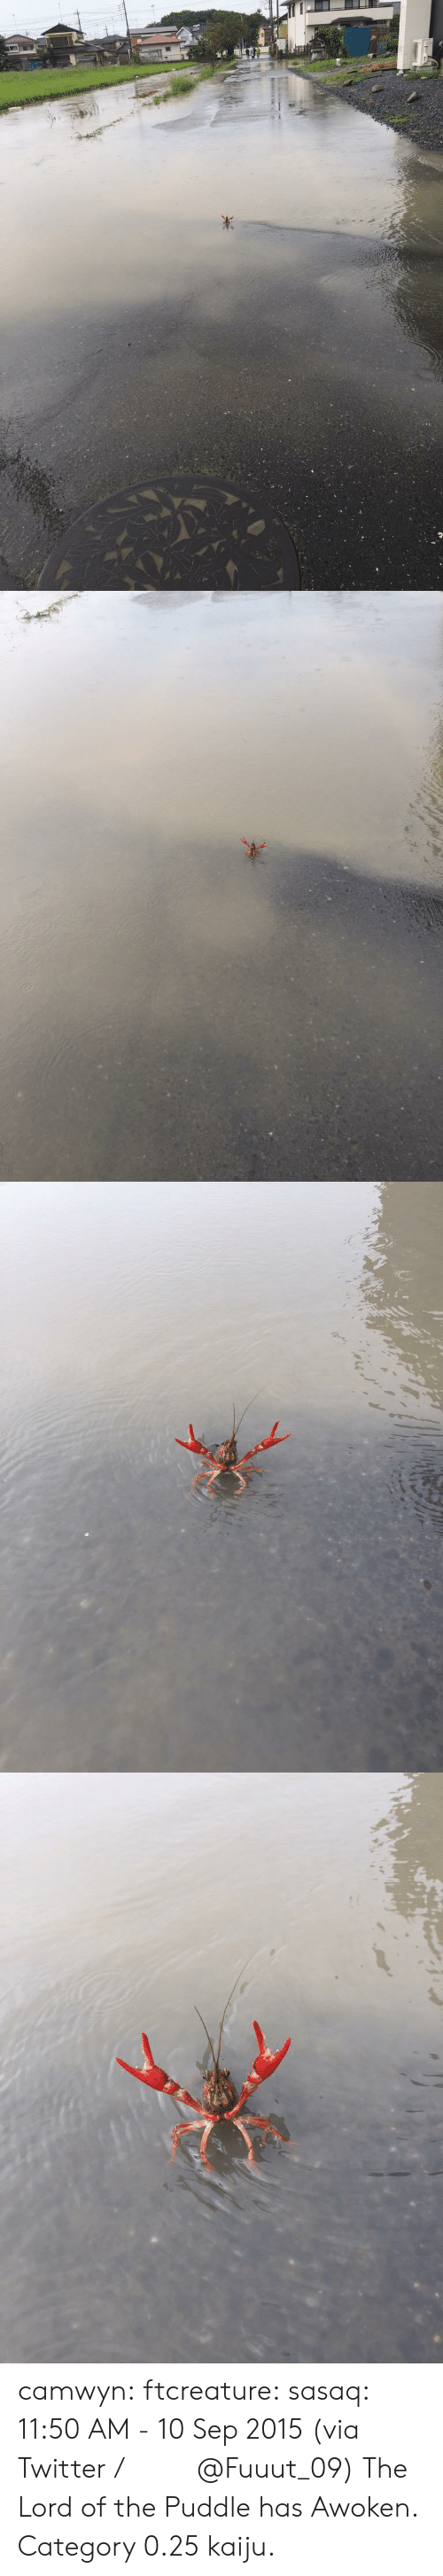 10 Sep: camwyn:  ftcreature:  sasaq:  11:50 AM - 10 Sep 2015 (via Twitter / ふ み な @Fuuut_09)   The Lord of the Puddle has Awoken.  Category 0.25 kaiju.